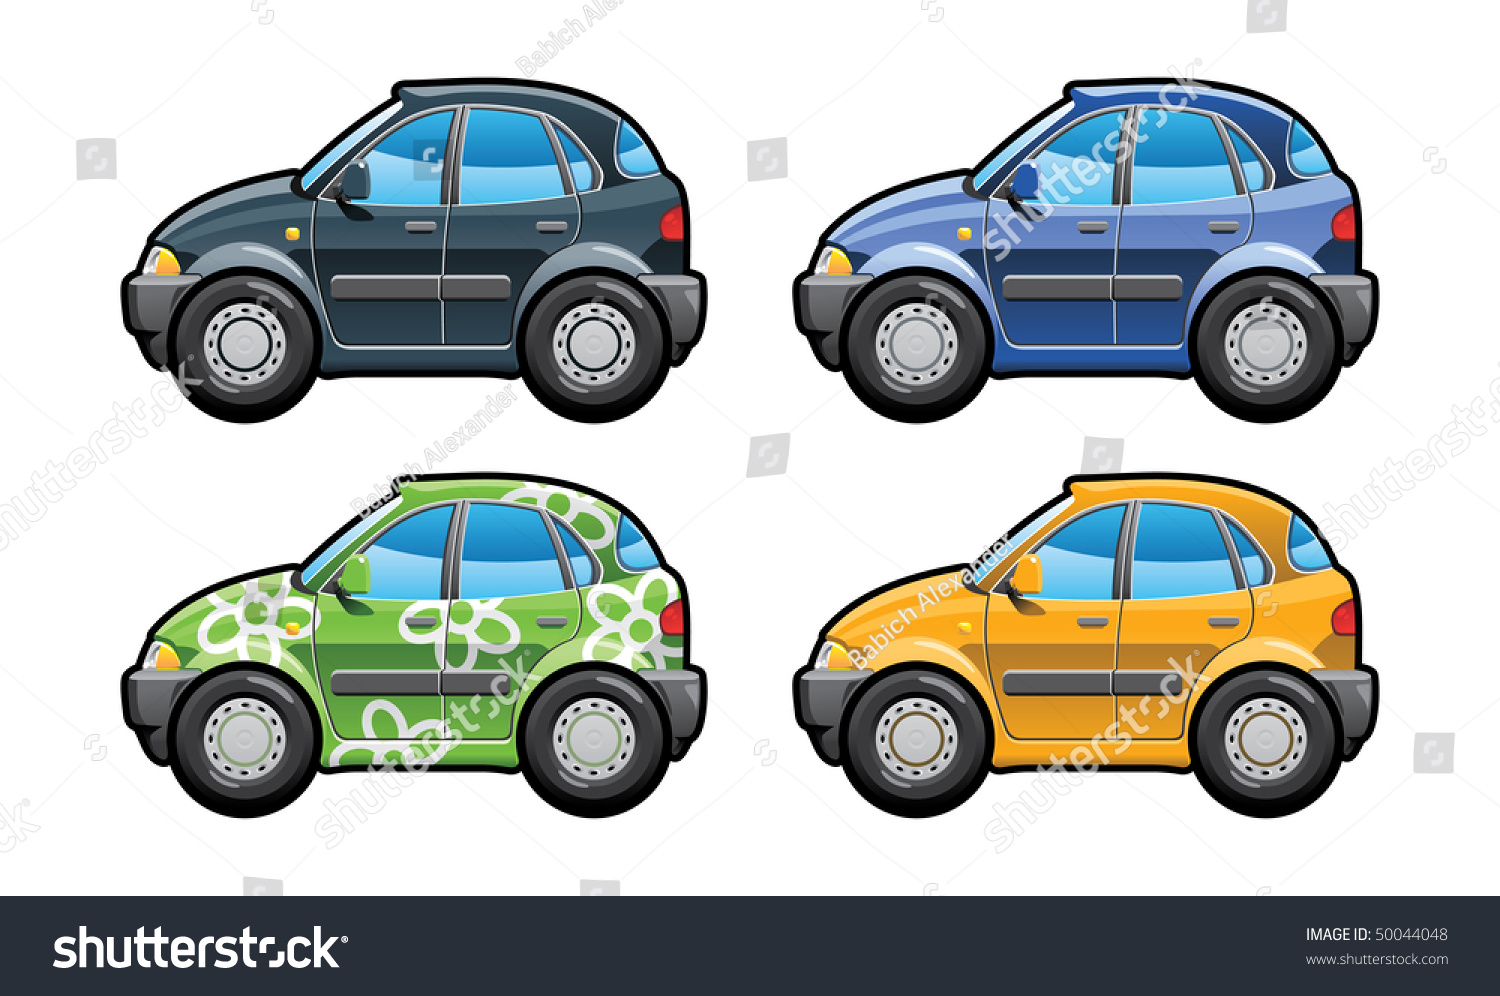 Hatchback part my collections car body stock vector for Simple car parts